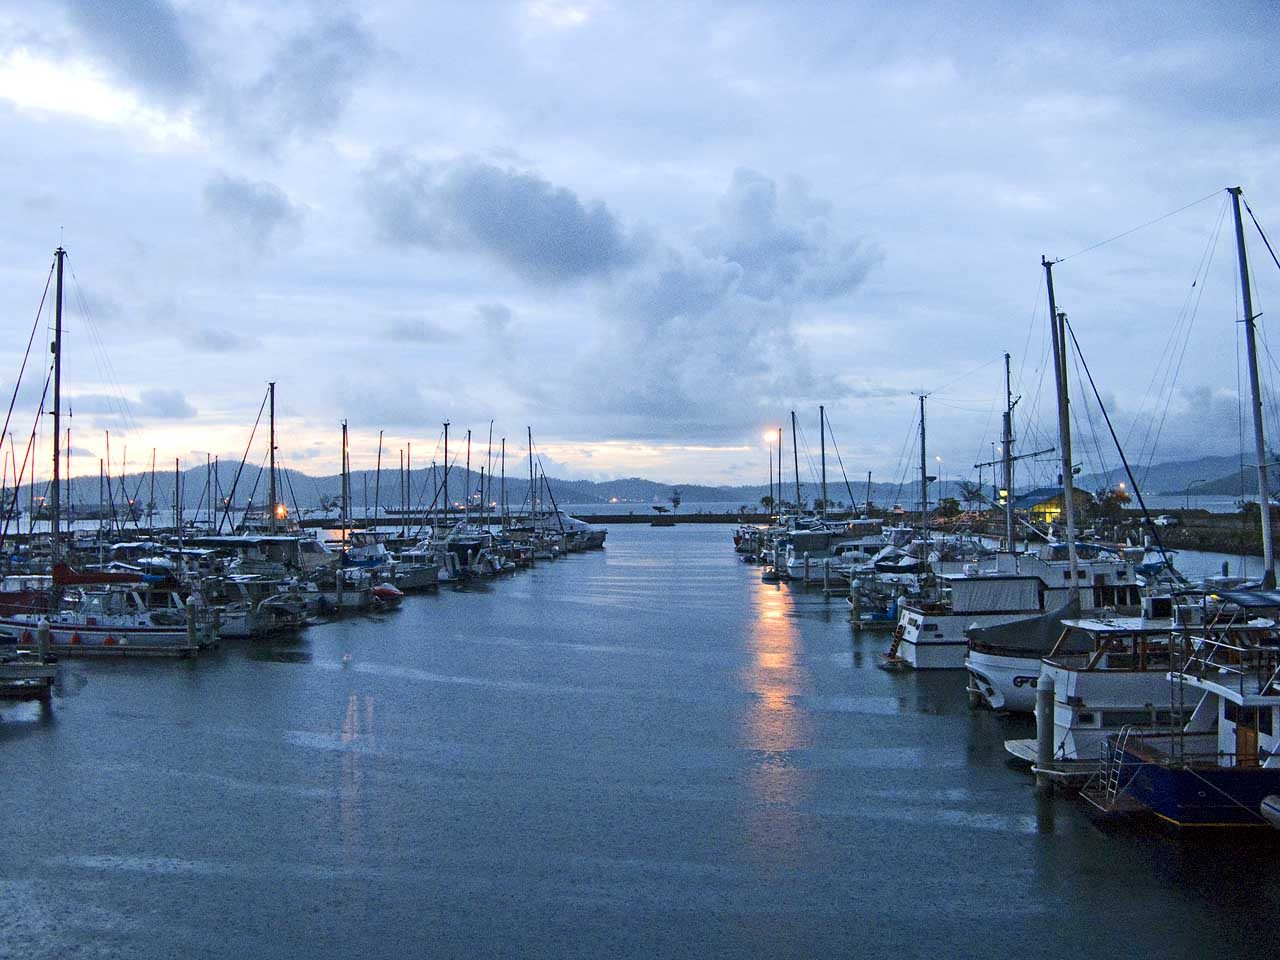 Port Moresby Royal Yacht Club at sunset